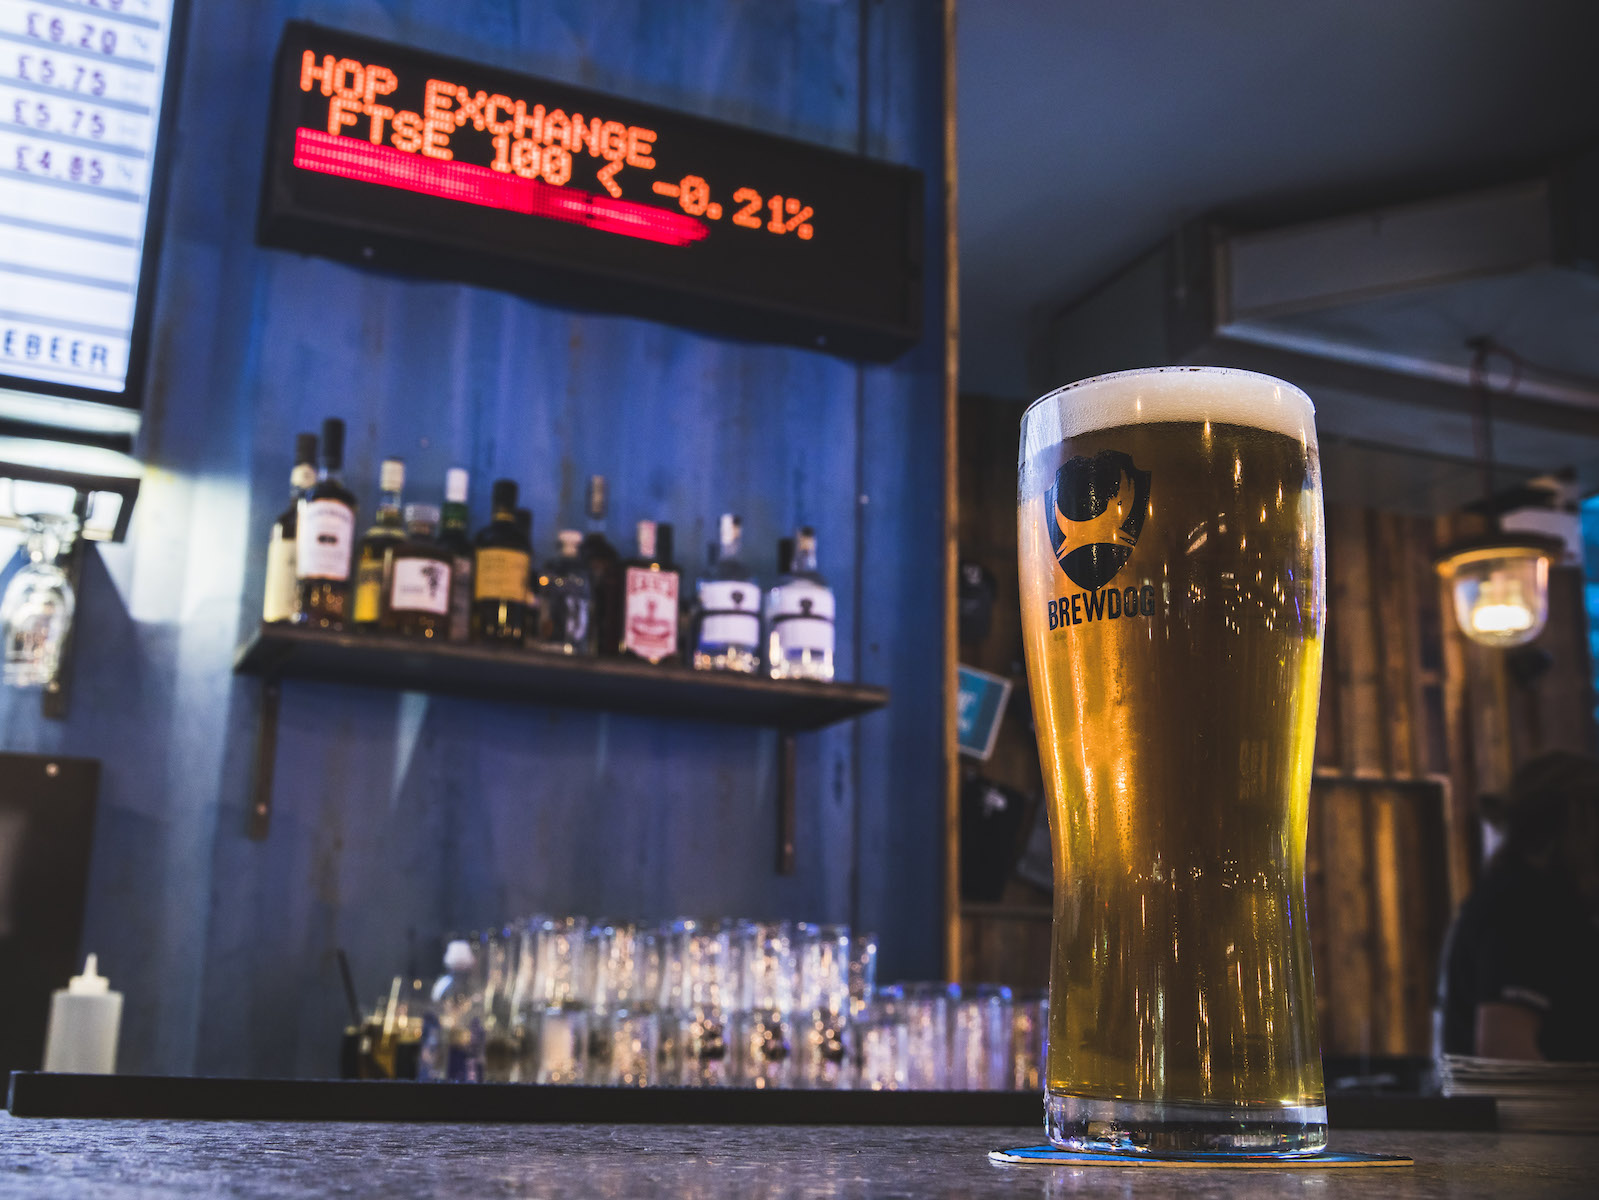 brewdog-hop-exchange-FT-BLOG1018.jpg